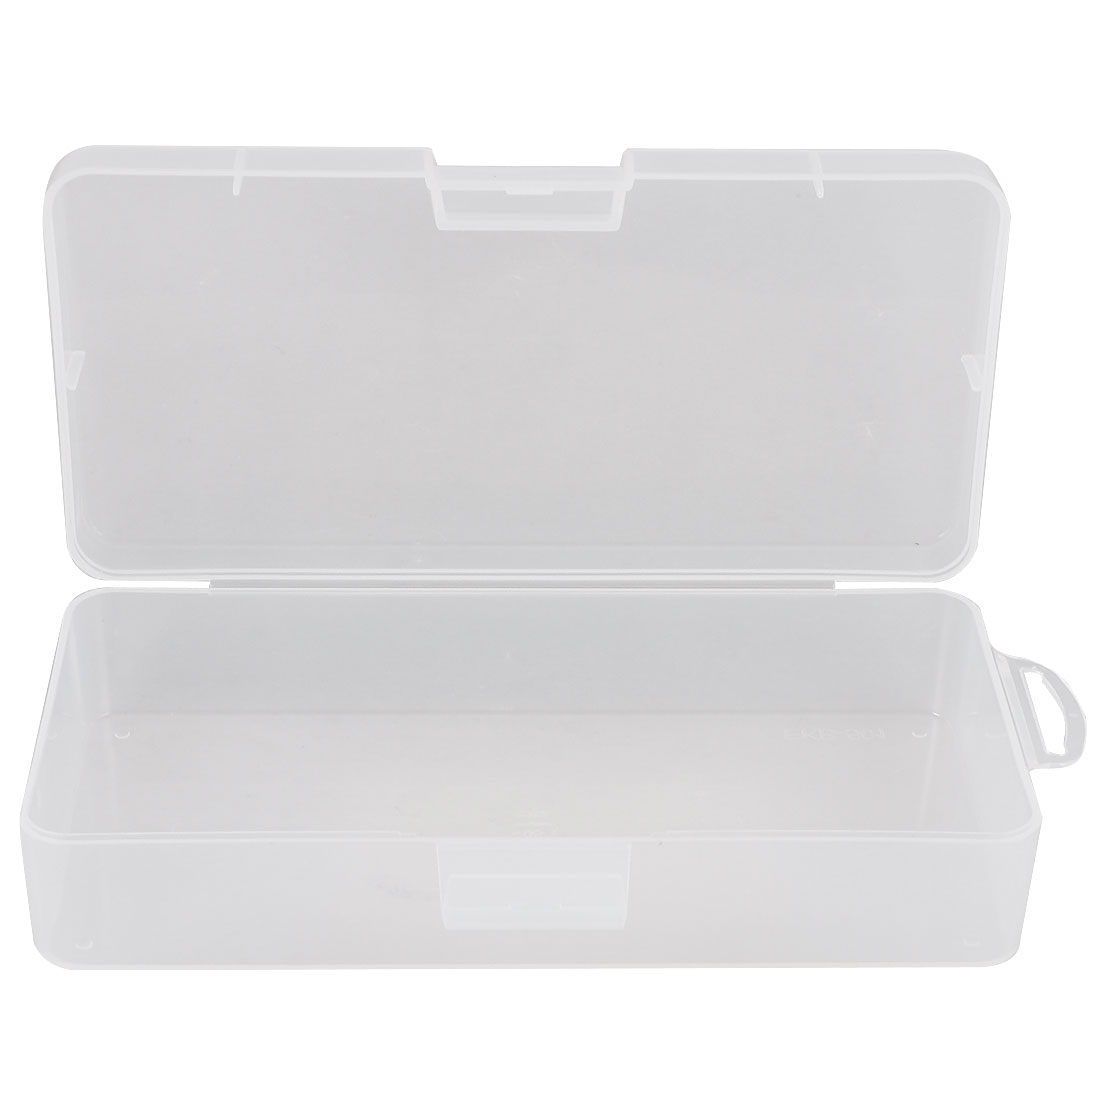 Clear Plastic Jewelry Rectangle Case Box Holder Container 18cm x 8.5cm x 4.5cm